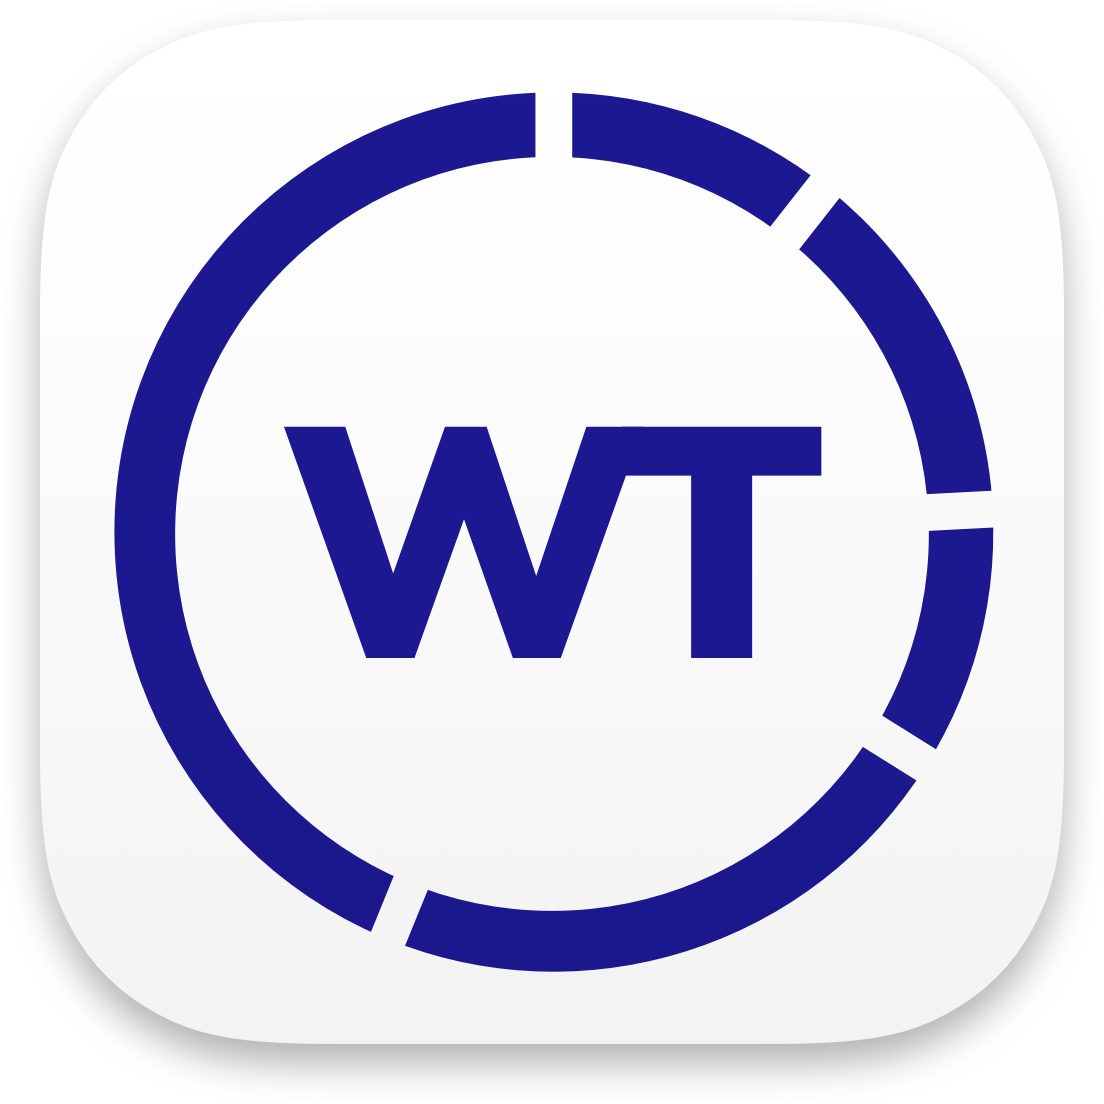 WT-icon-shadow.png